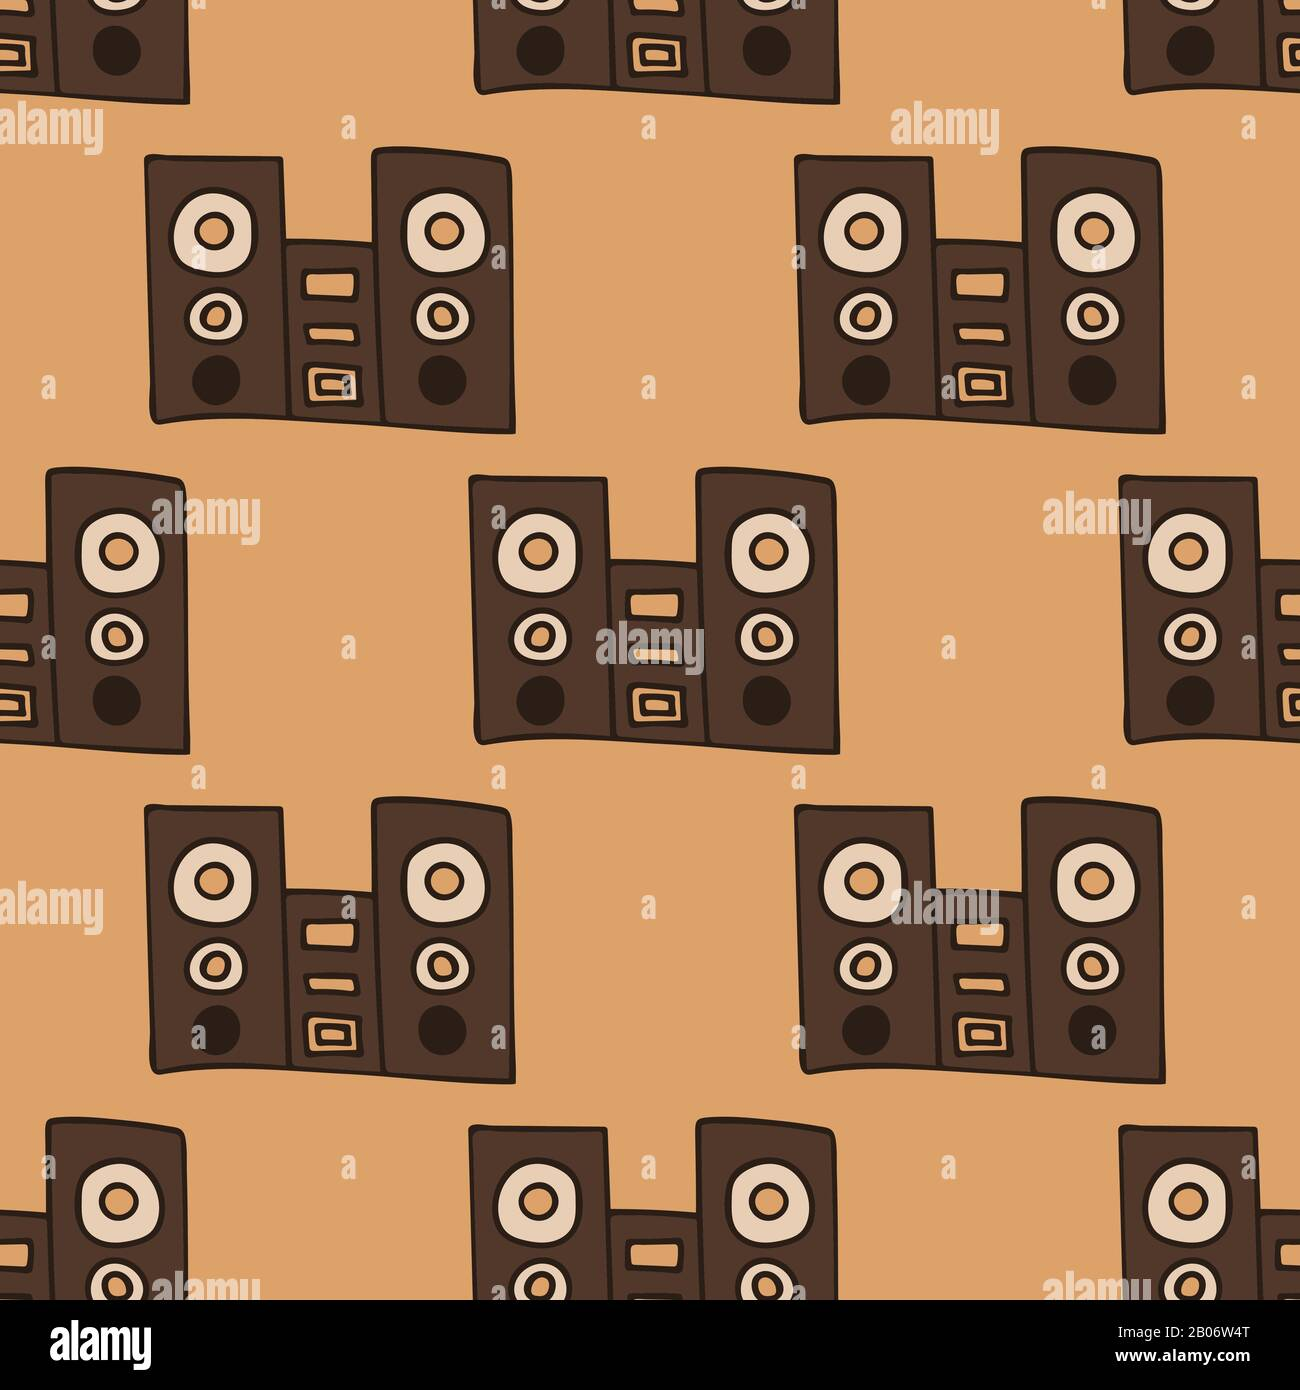 speakers with subwoofer. music system. seamless pattern stock vector illustration Stock Vector